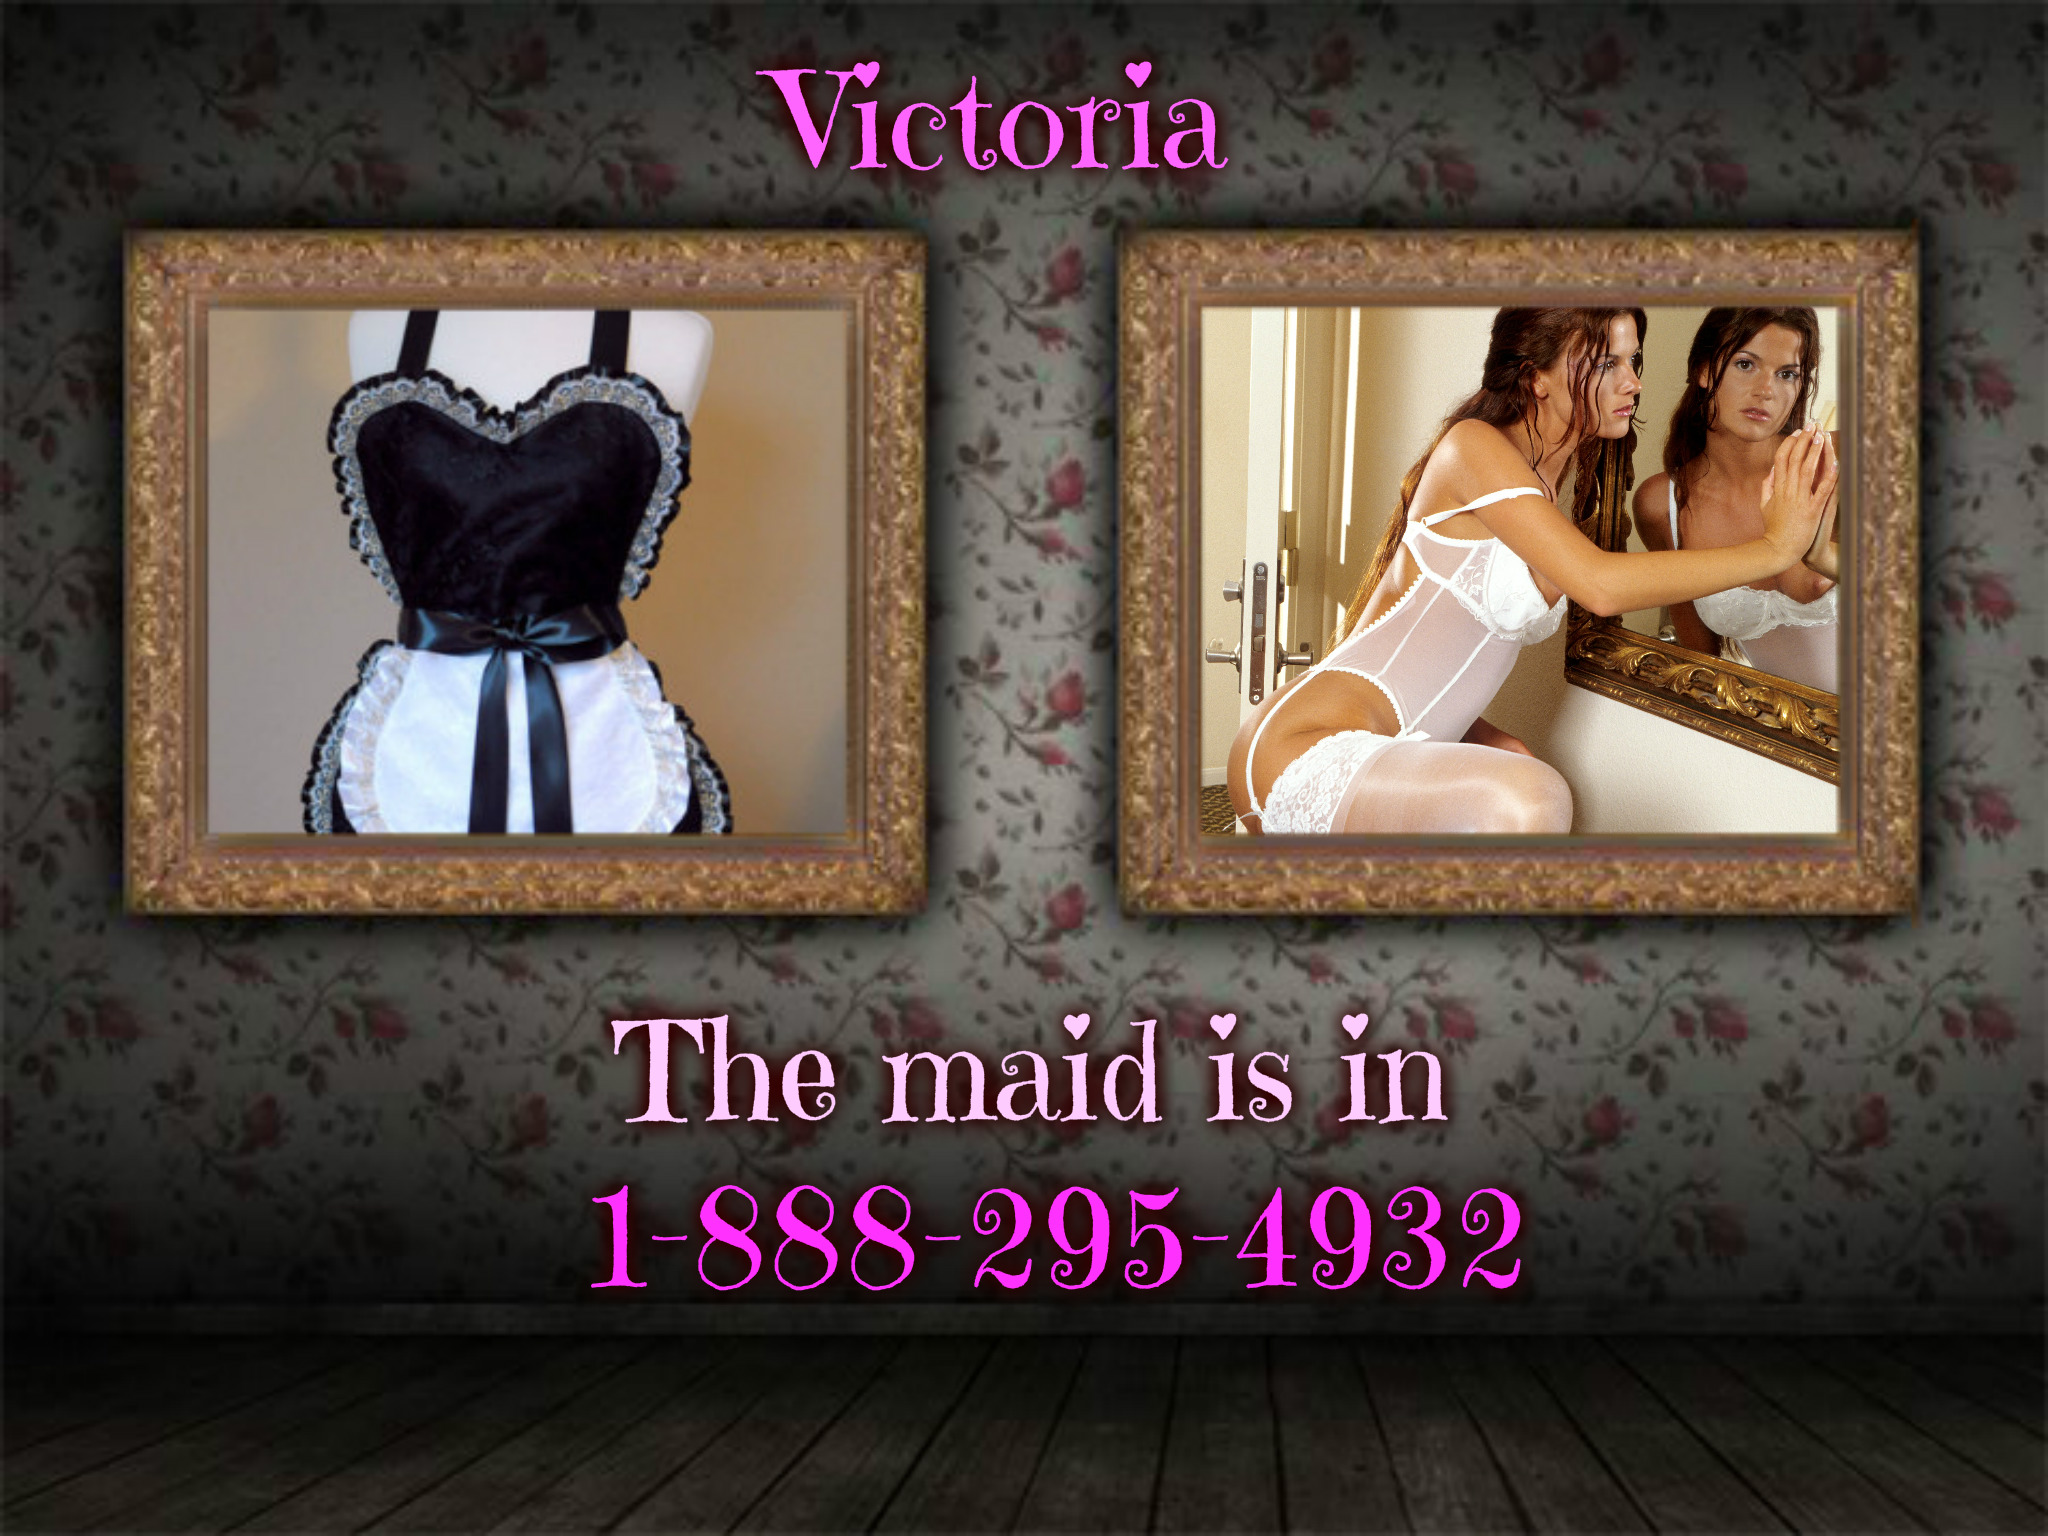 French maid phone sex - Copy